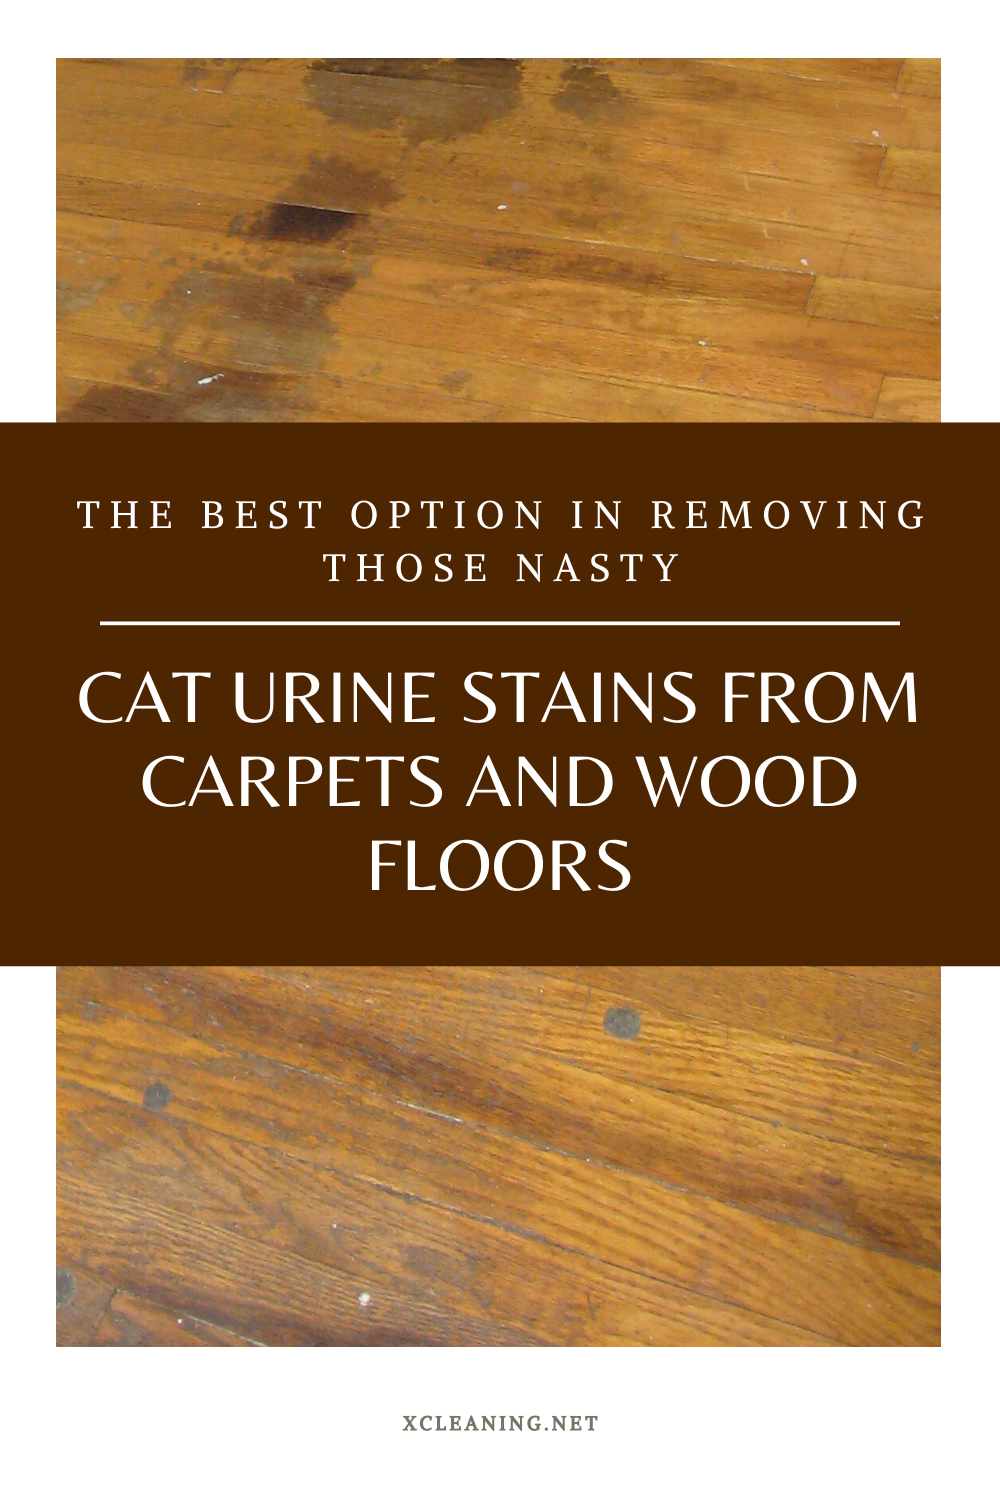 The Best Option Removing Those Nasty Cat Urine Stains From Carpets And Wood Floors